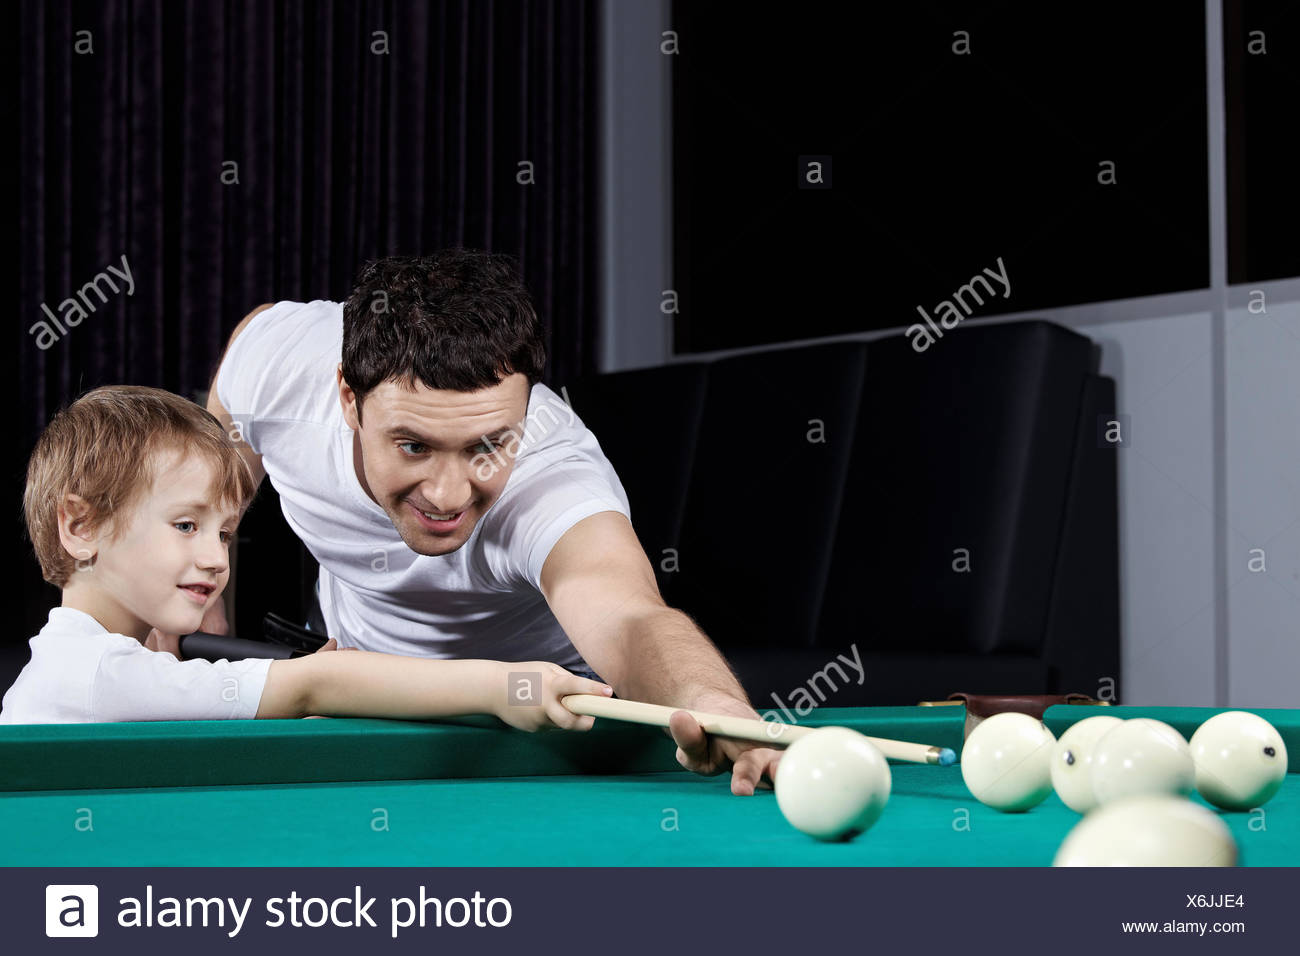 The players - Stock Image